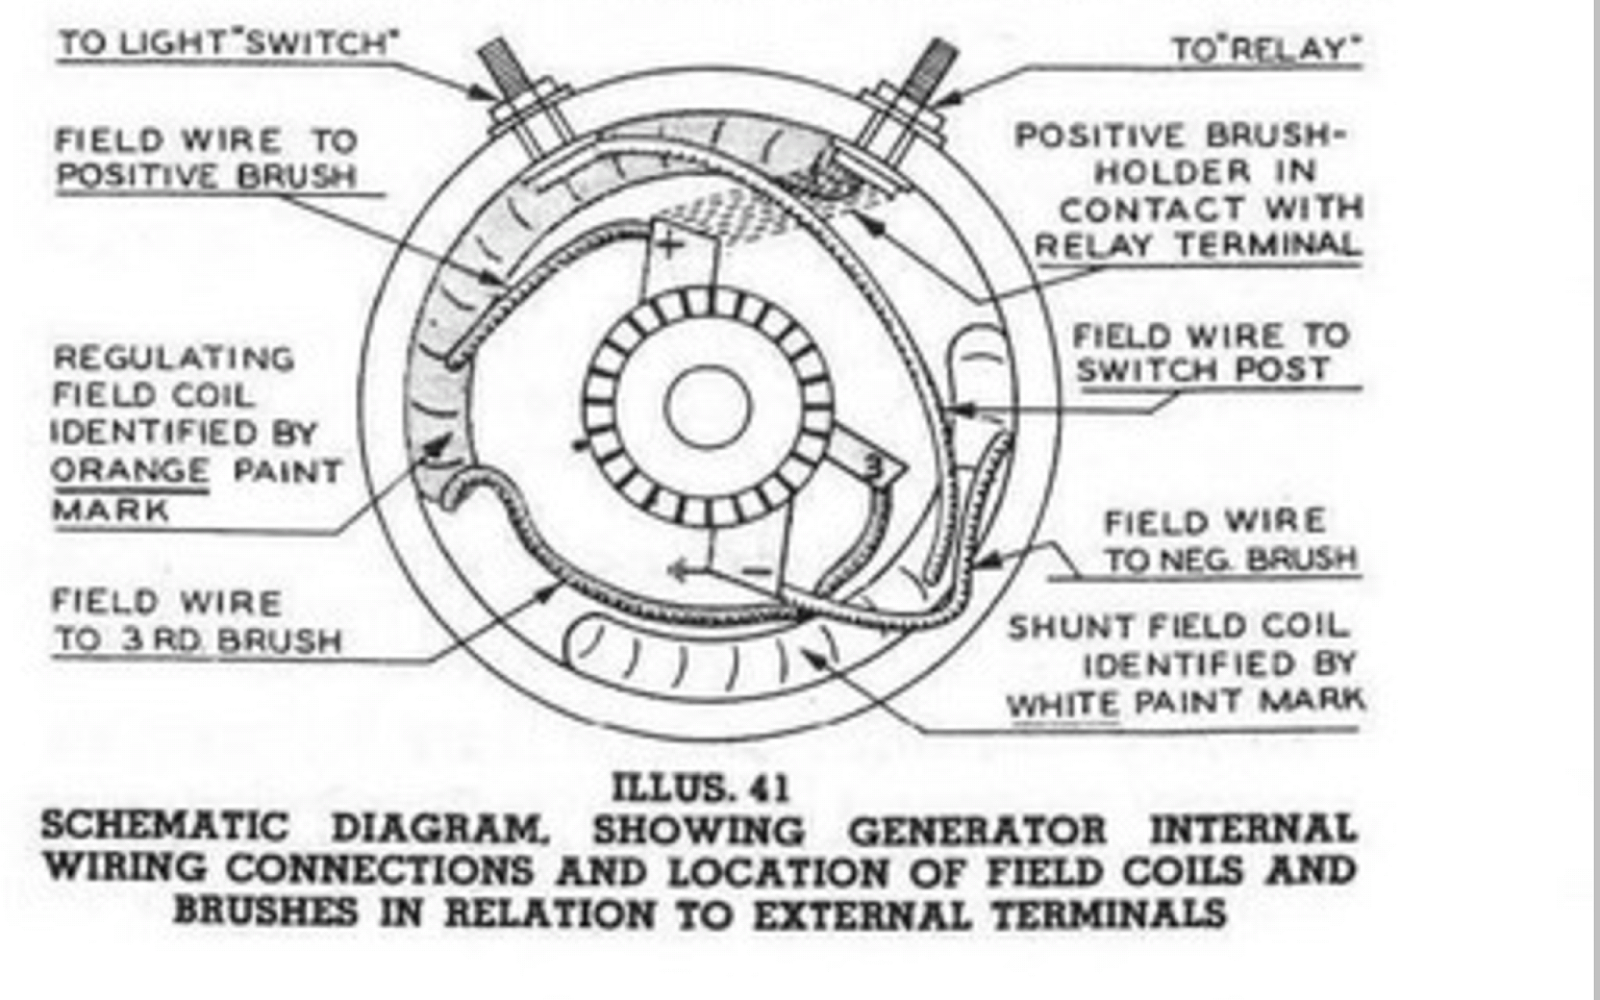 Harley Generator Diagram Circuit Symbols Simple Wiring 1941 Davidson Wl Restoration Re The Rh Harley1941wl Blogspot Com Turbine Basic